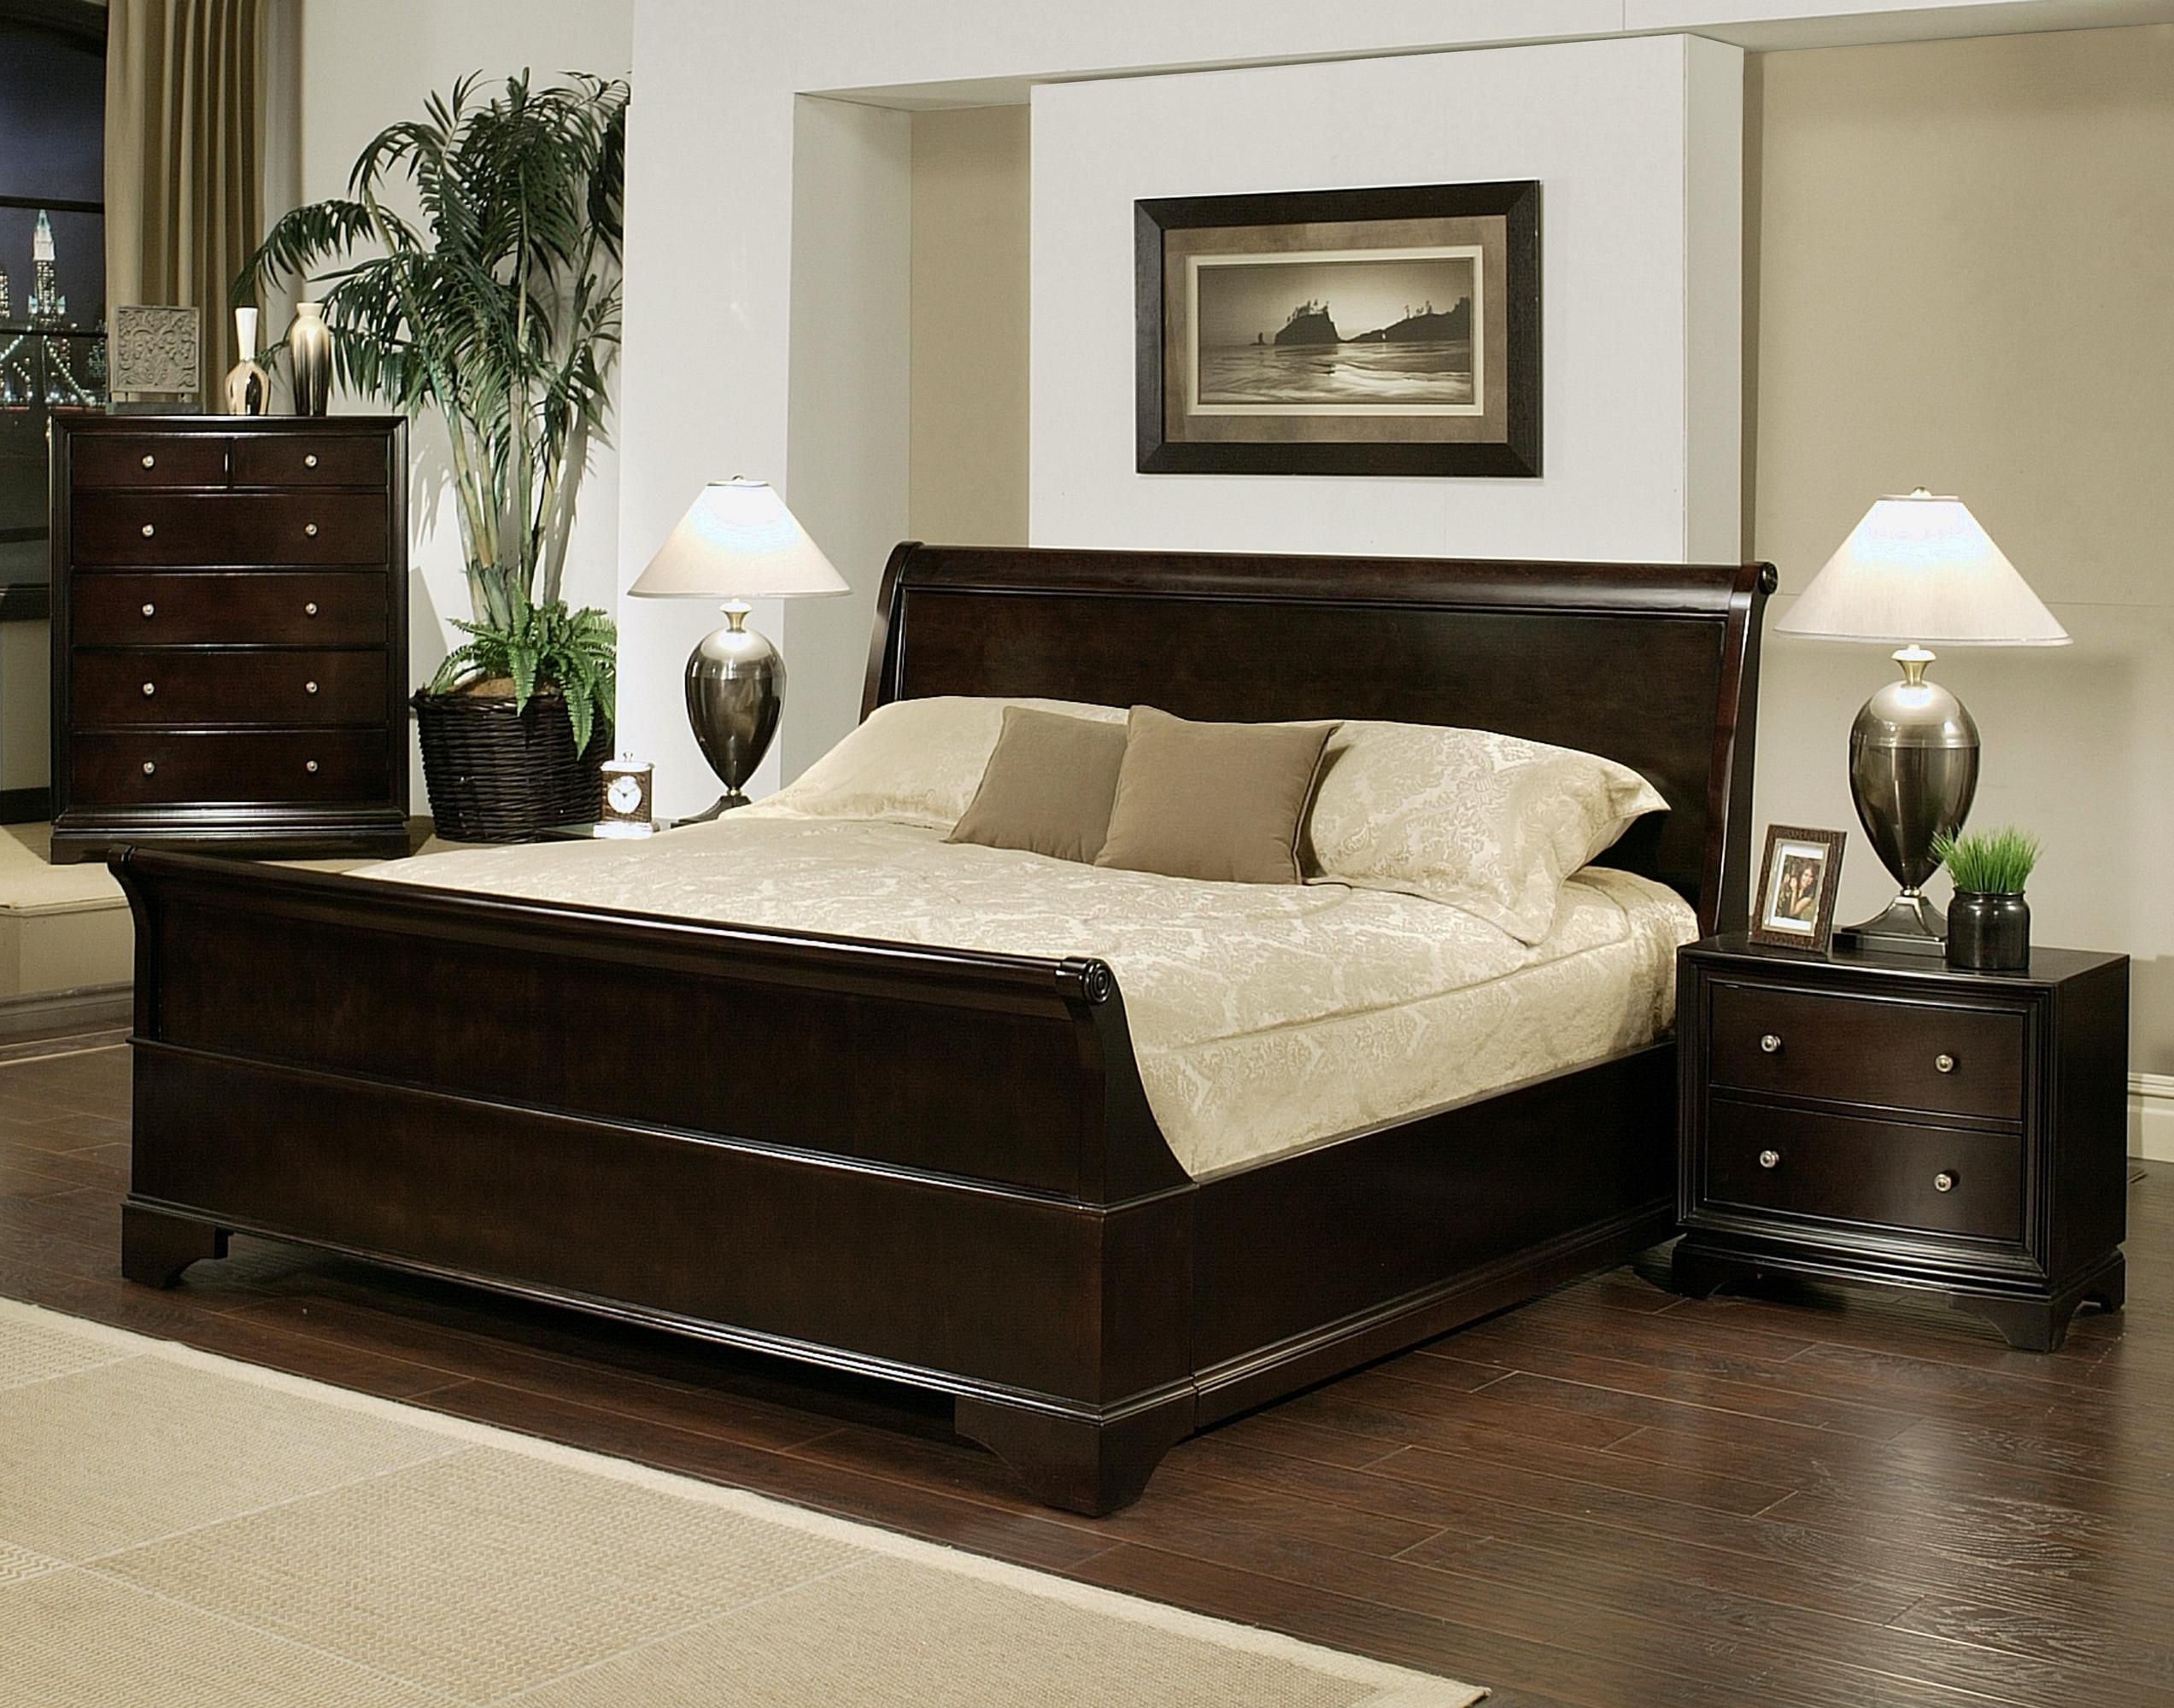 Abbyson Sleigh Cal King Bed Set With 4 Cushion And Nightstand Set ...